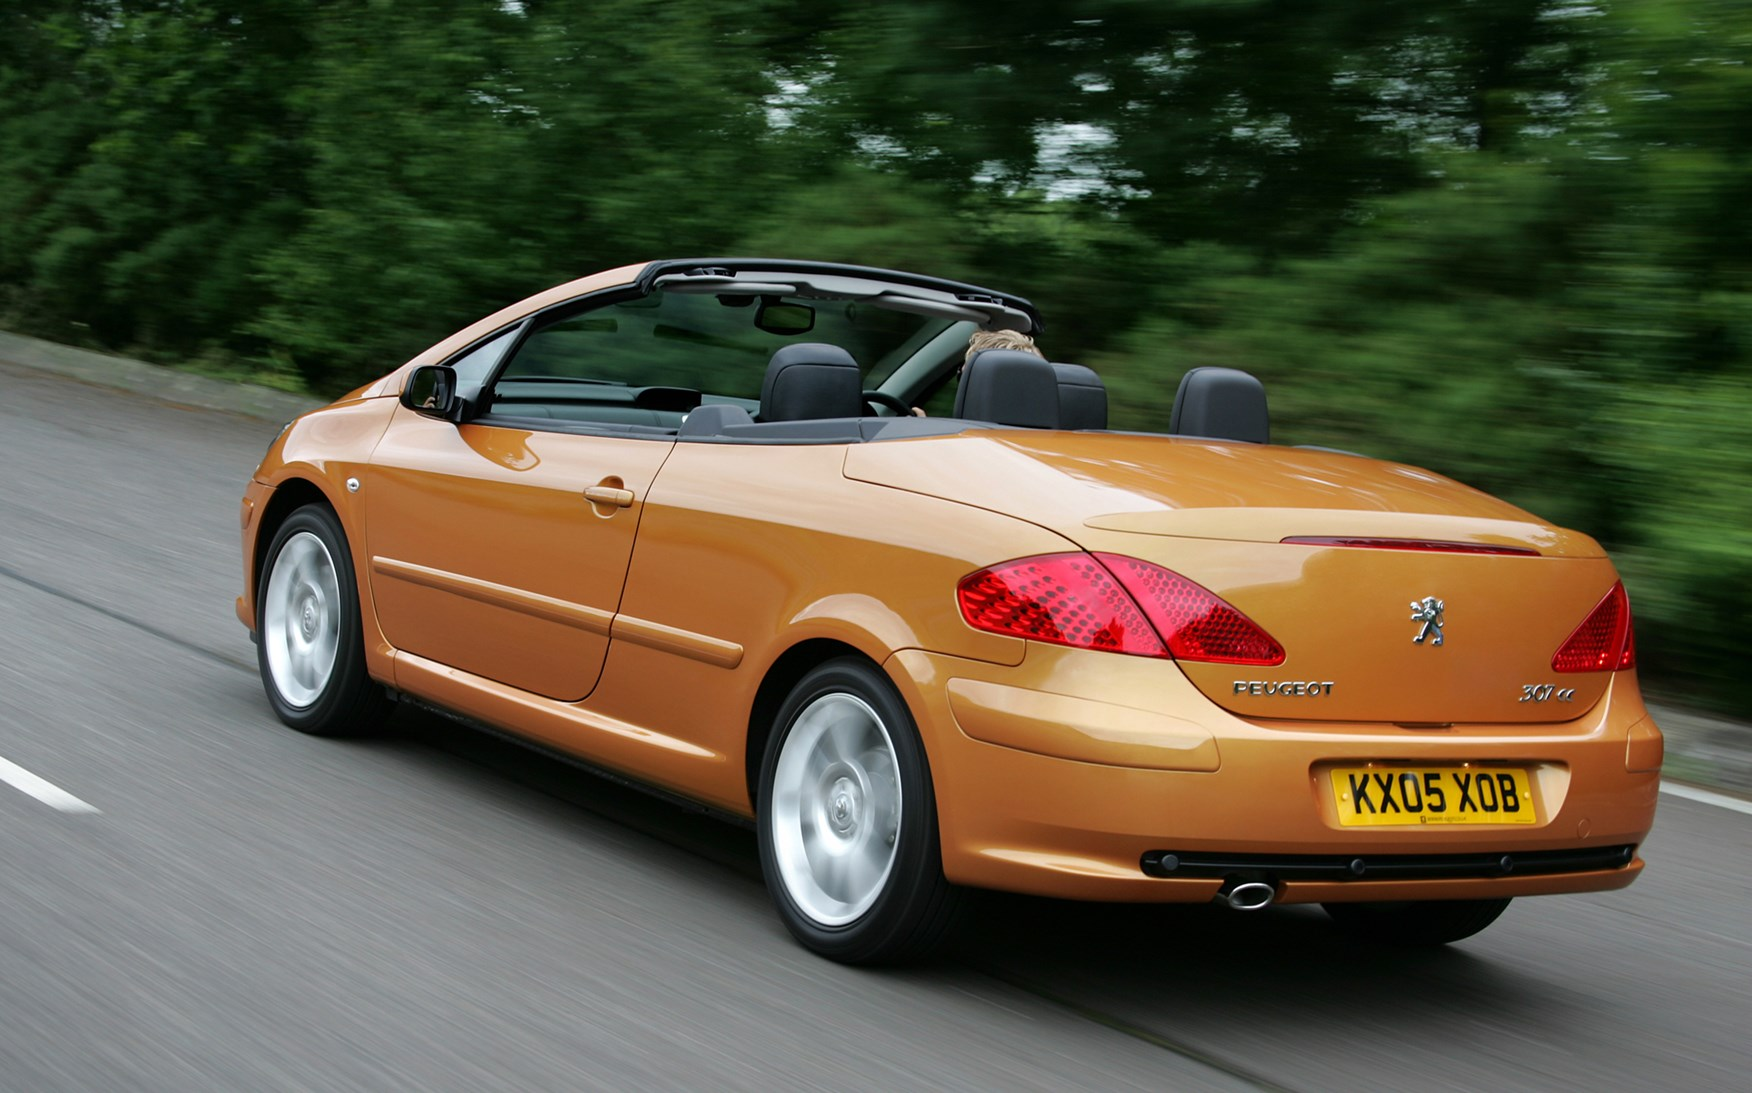 2007 Ford Focus Hatchback >> Used Peugeot 307 Coupe Cabriolet (2003 - 2008) Review | Parkers